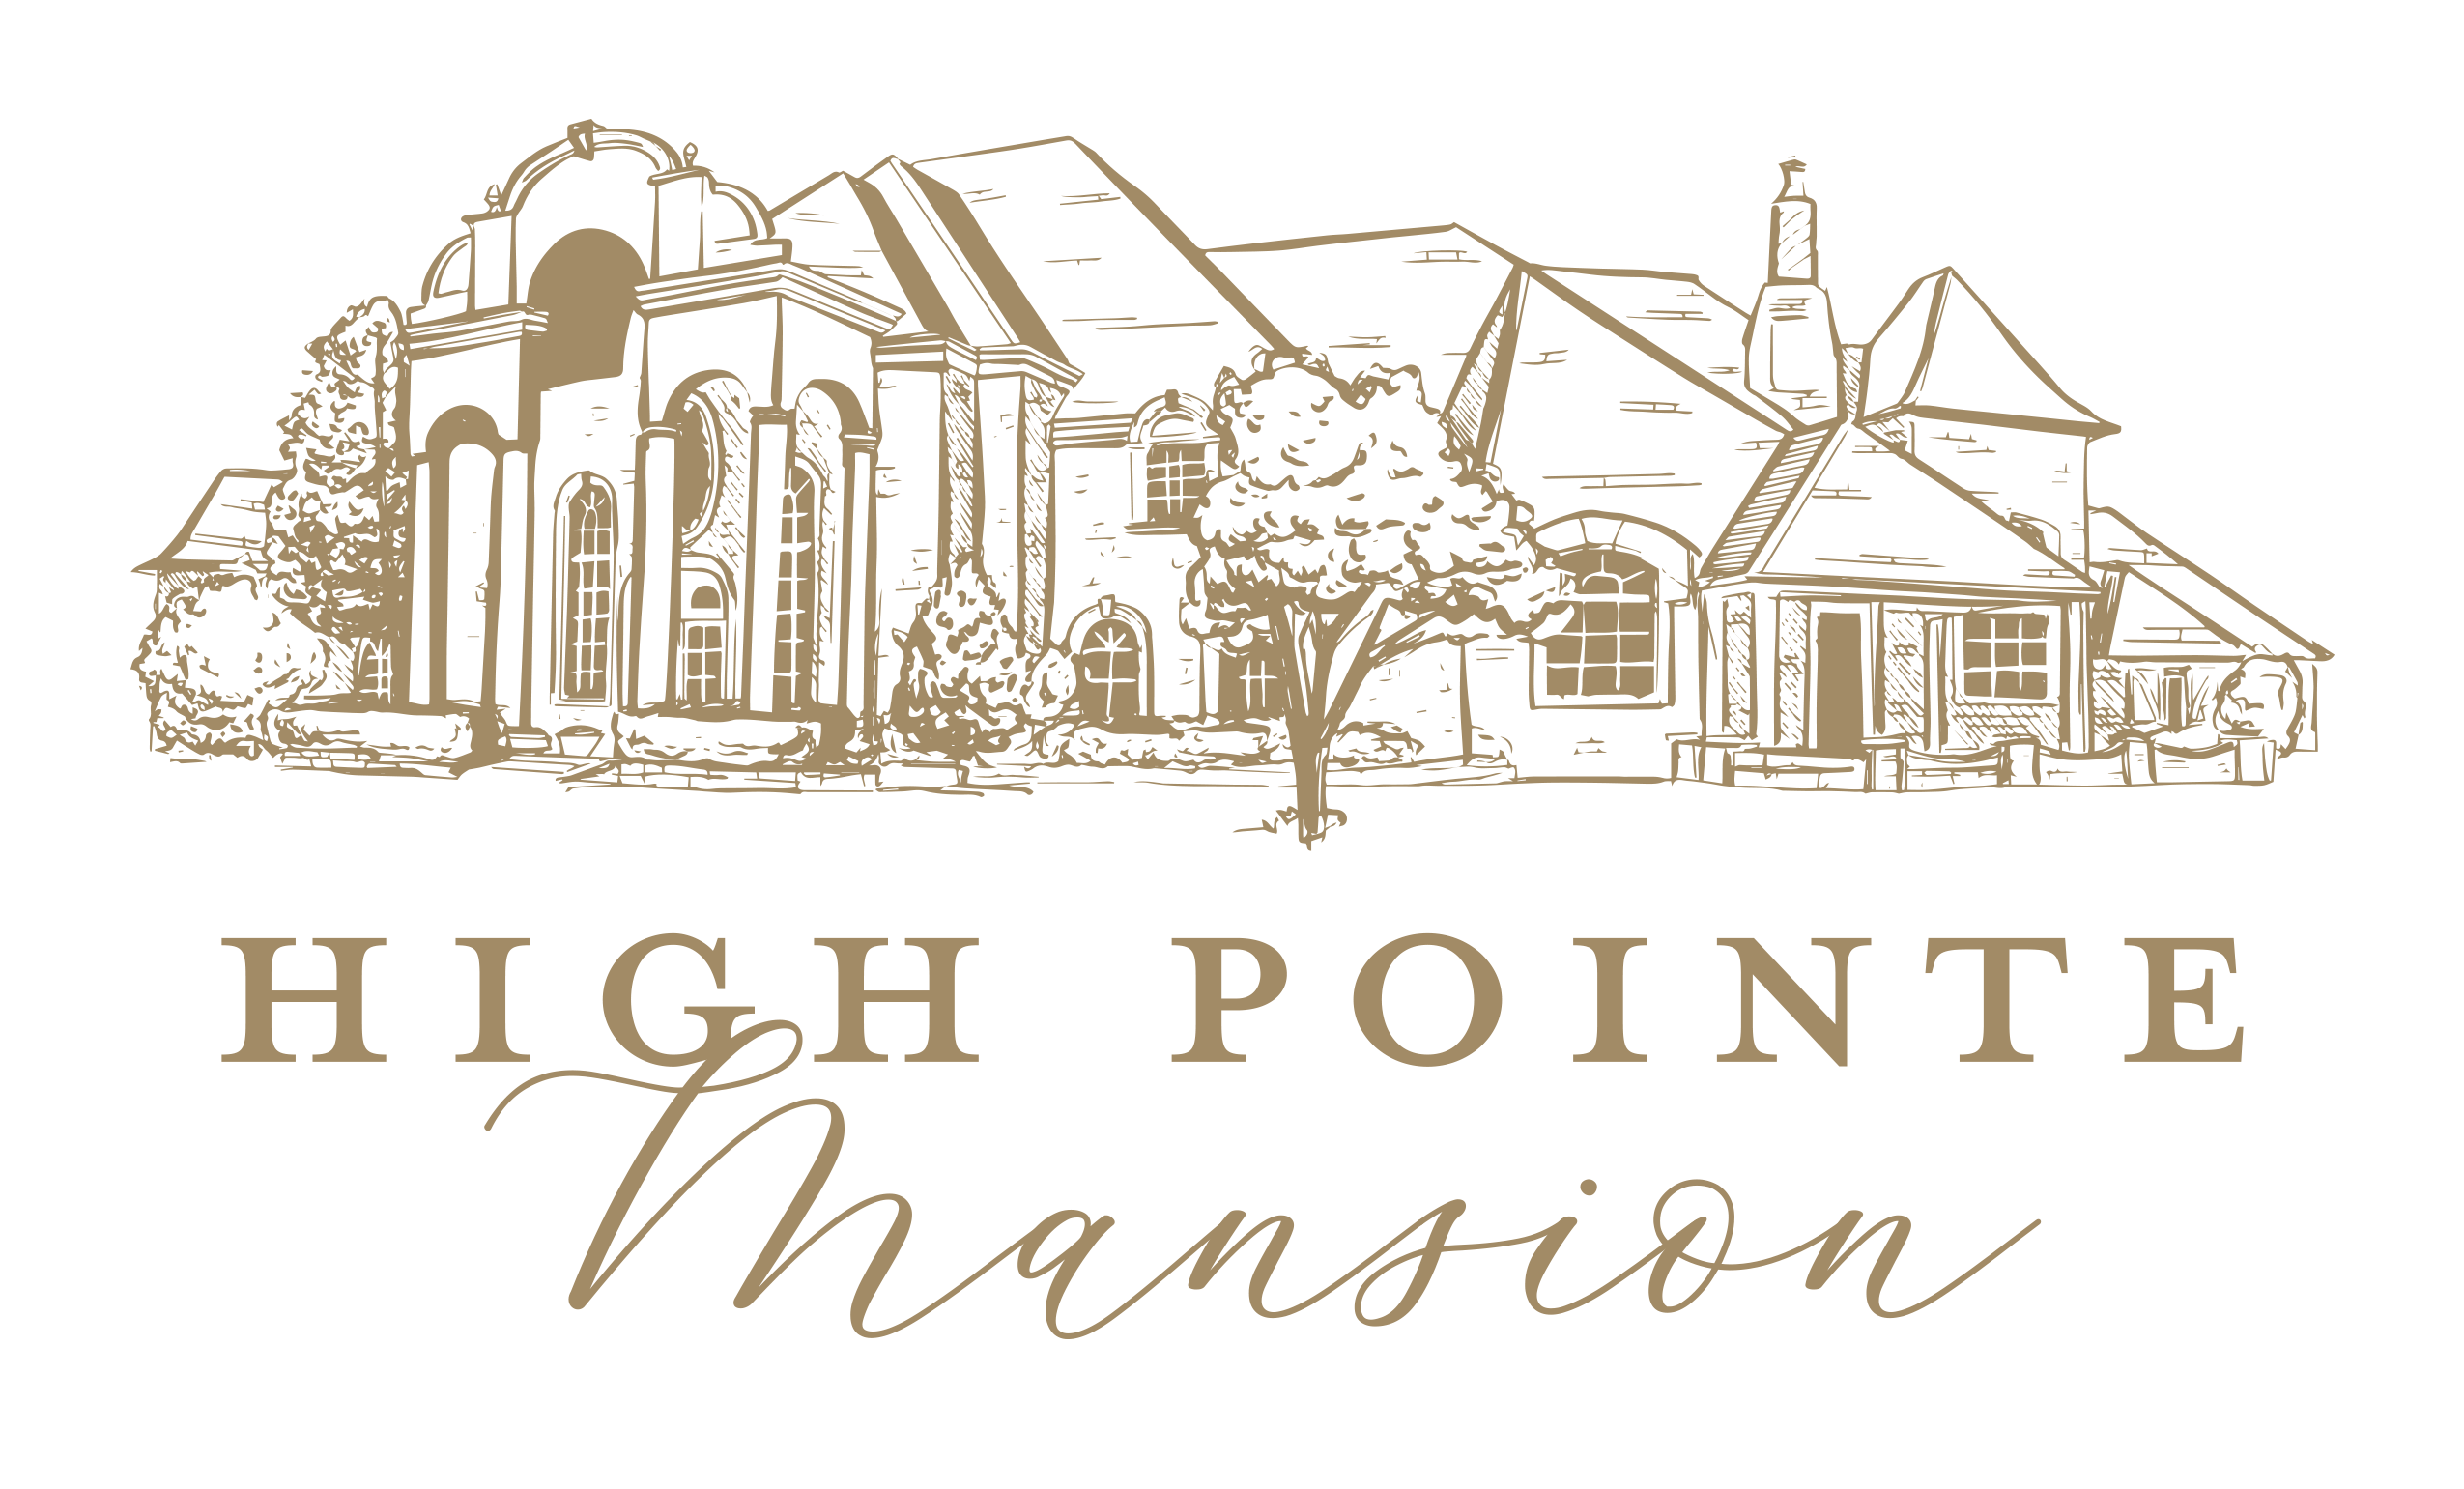 High Pointe Mansion Venues